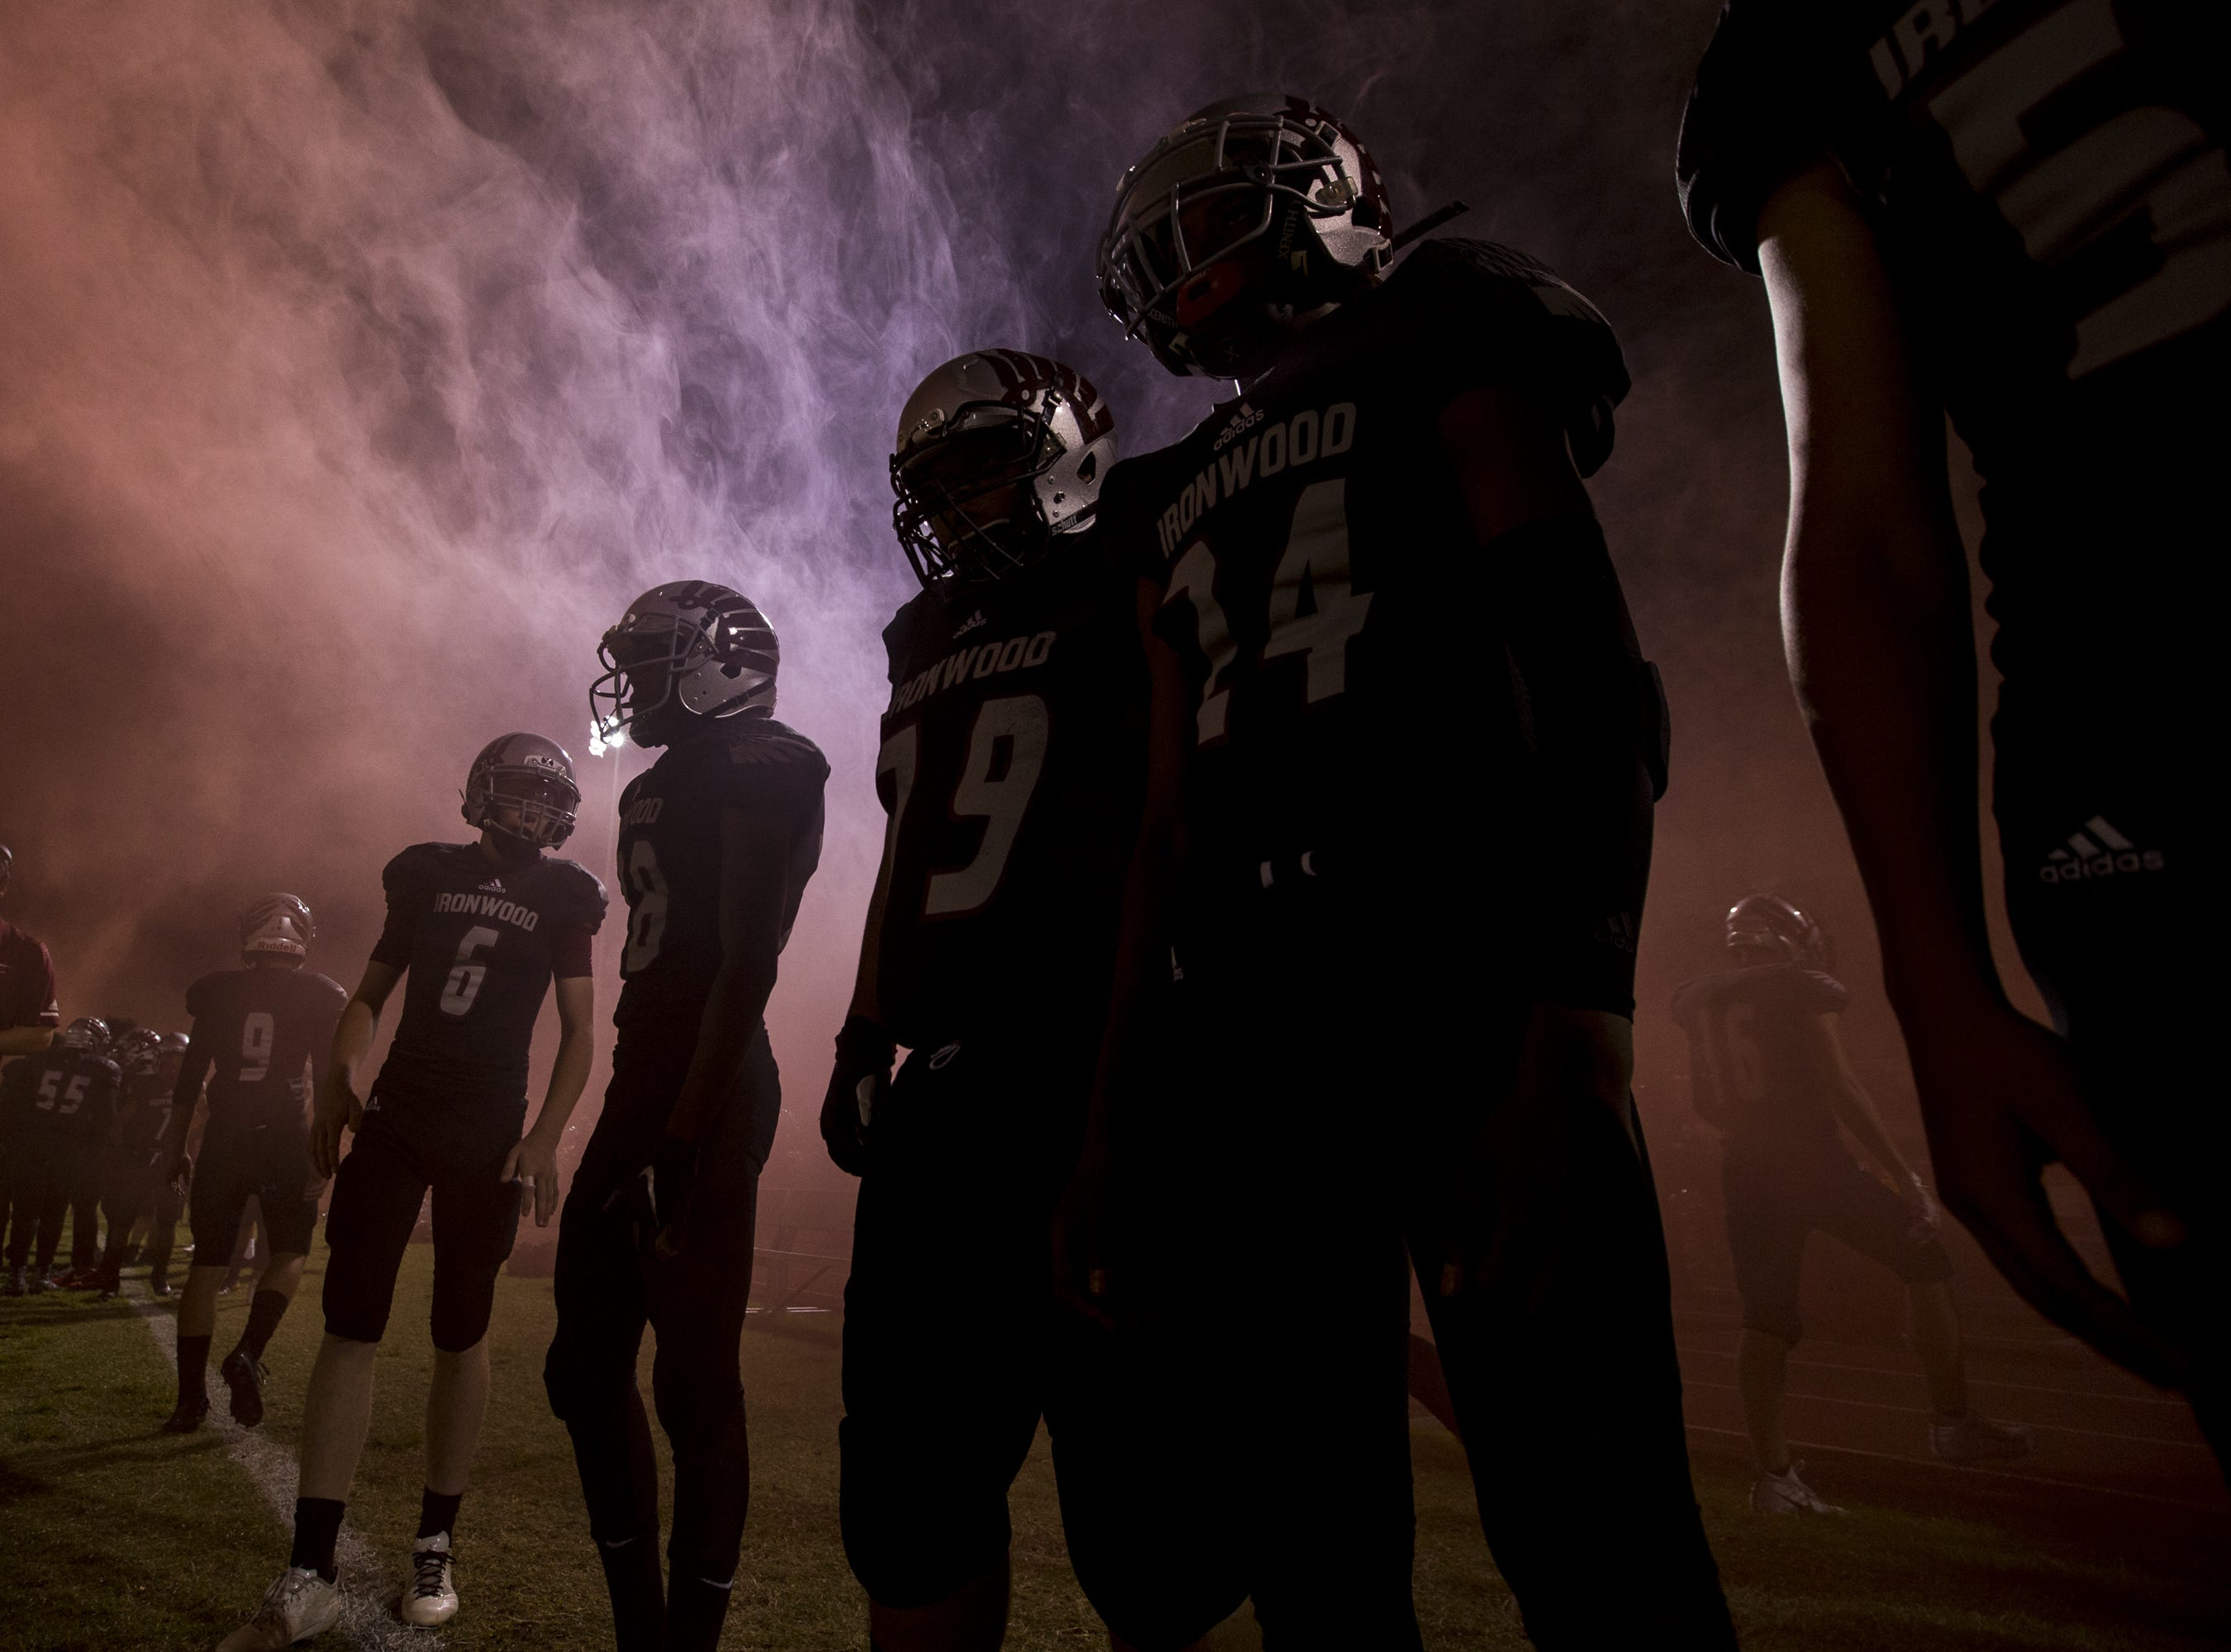 Ironwood players stand on the sideline before the game against Sunrise Mountain on Friday, Sept. 28, 2018, at Ironwood High School in Glendale, Ariz.  #azhsfb